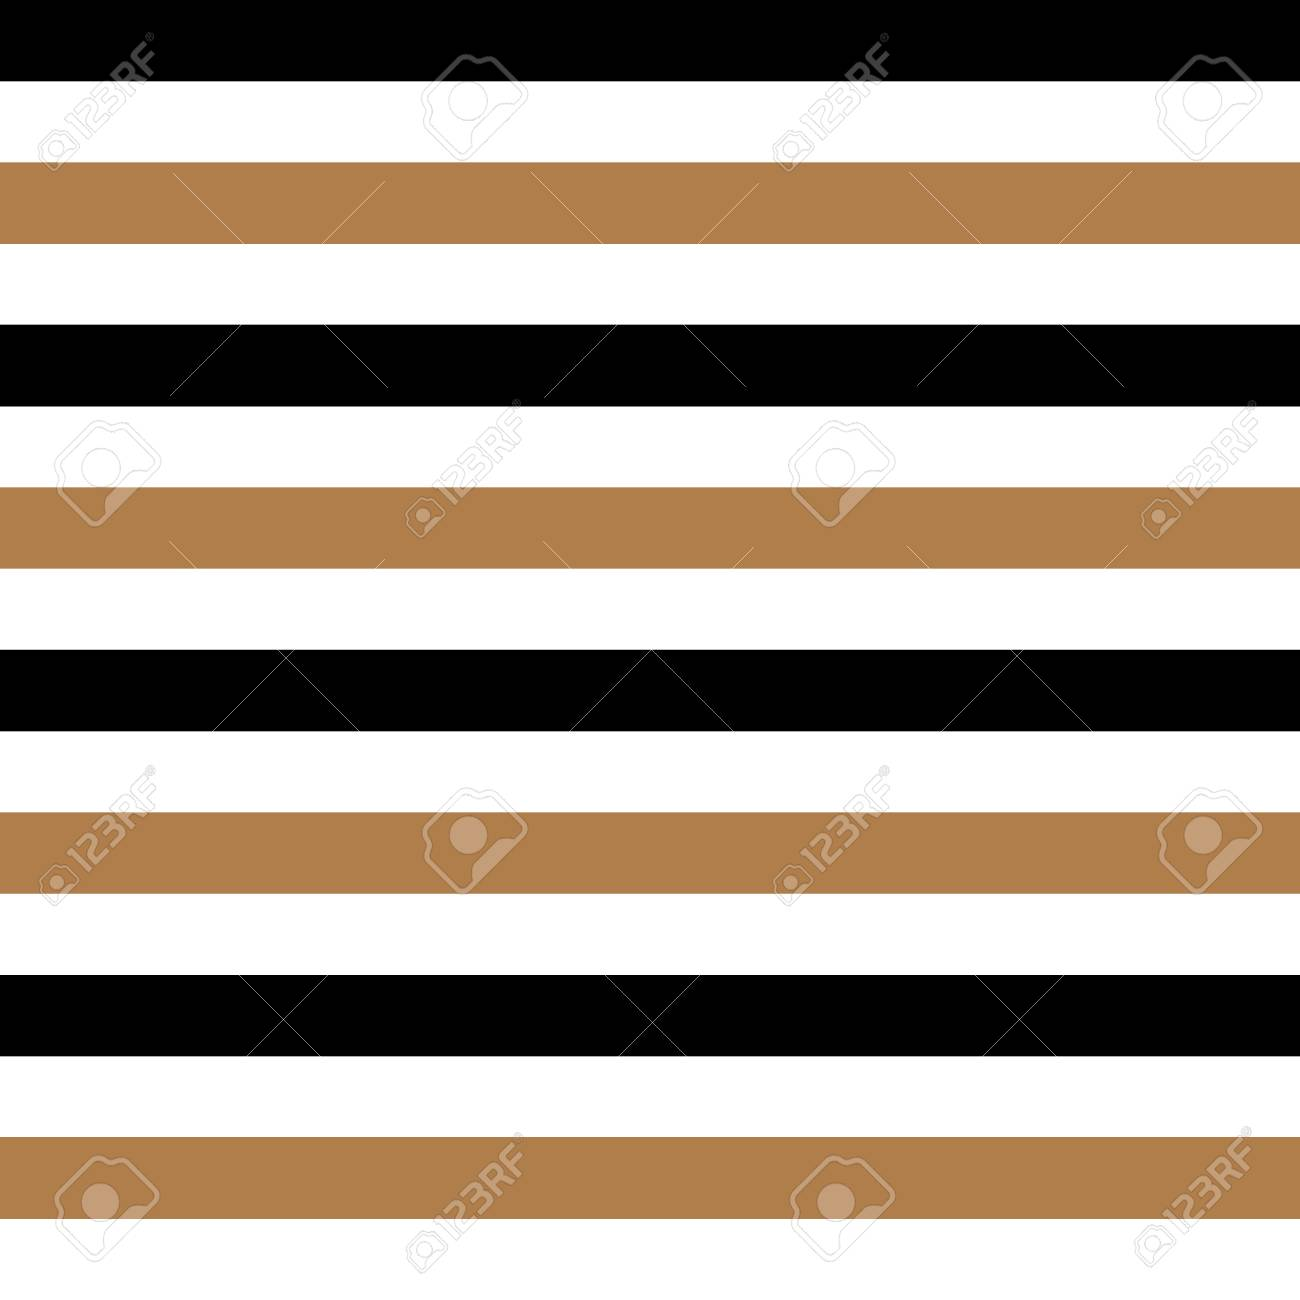 Abstract Seamless Geometric Horizontal Striped Pattern With Gold Royalty Free Cliparts Vectors And Stock Illustration Image 101044938